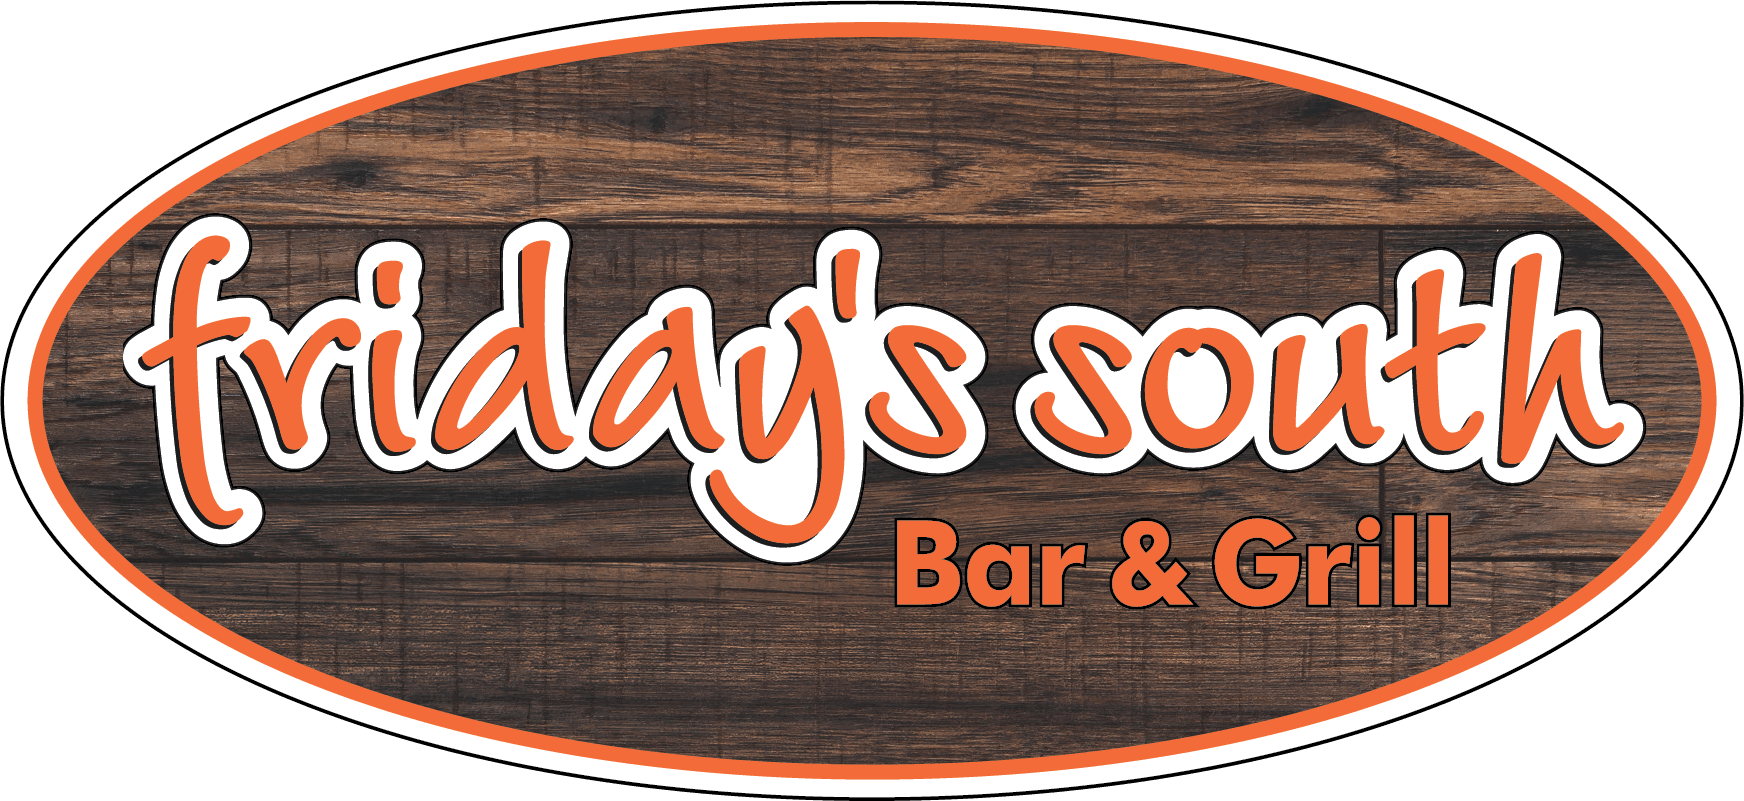 Friday's South logo on a wooden background